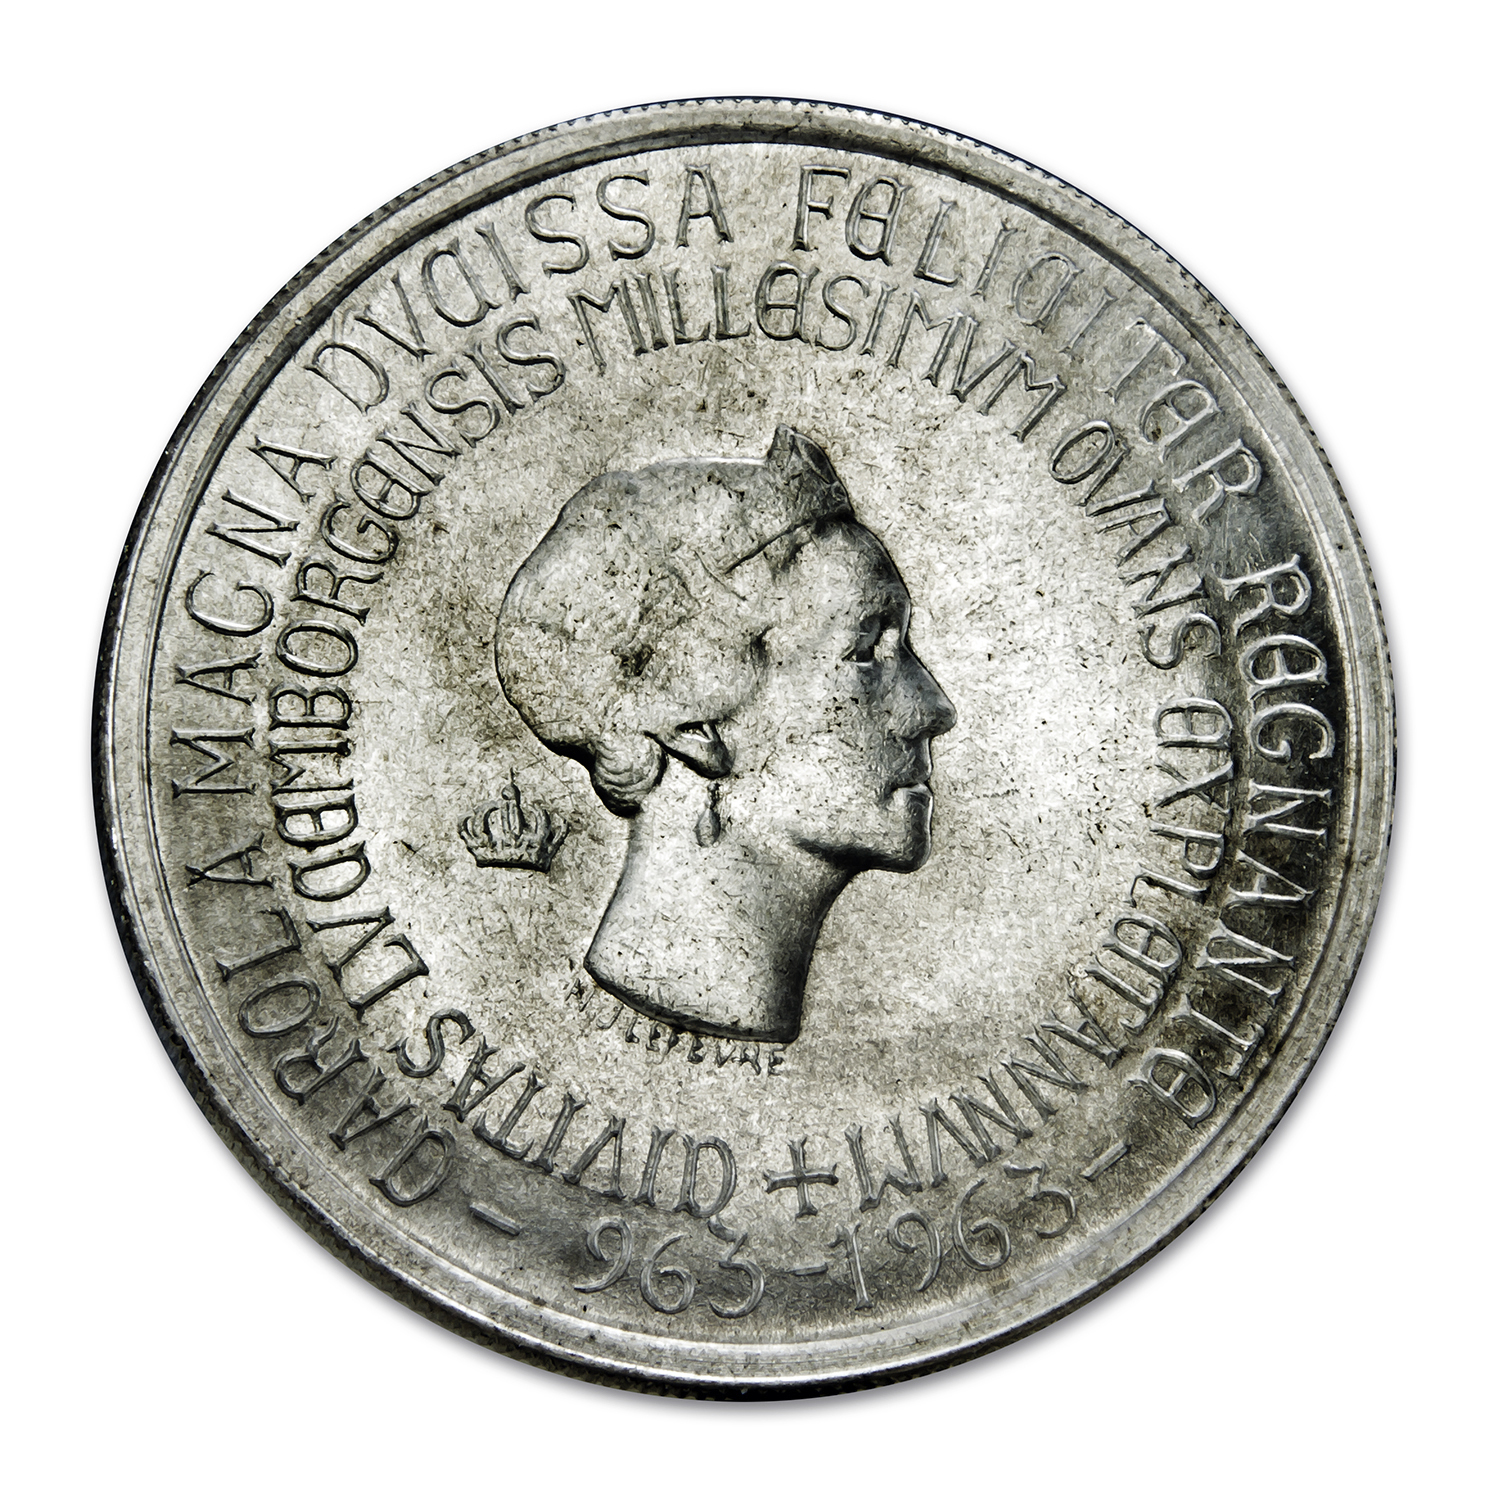 Luxembourg 1963 Silver 250 Francs BU Charlotte